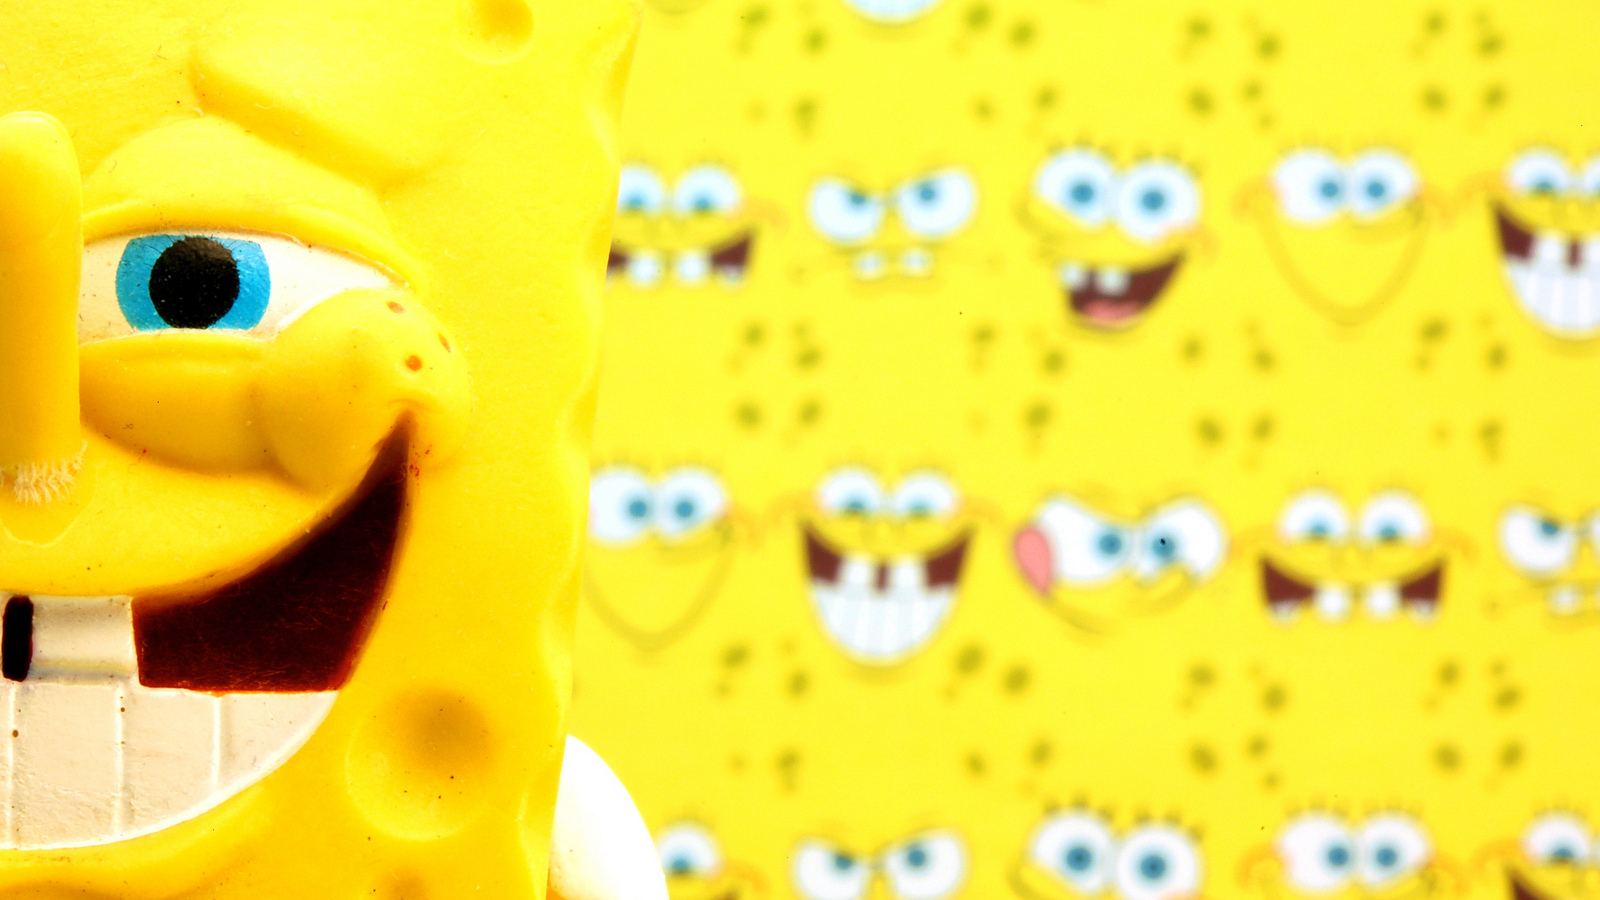 SpongeBob Removed From App Store Over Privacy Concerns